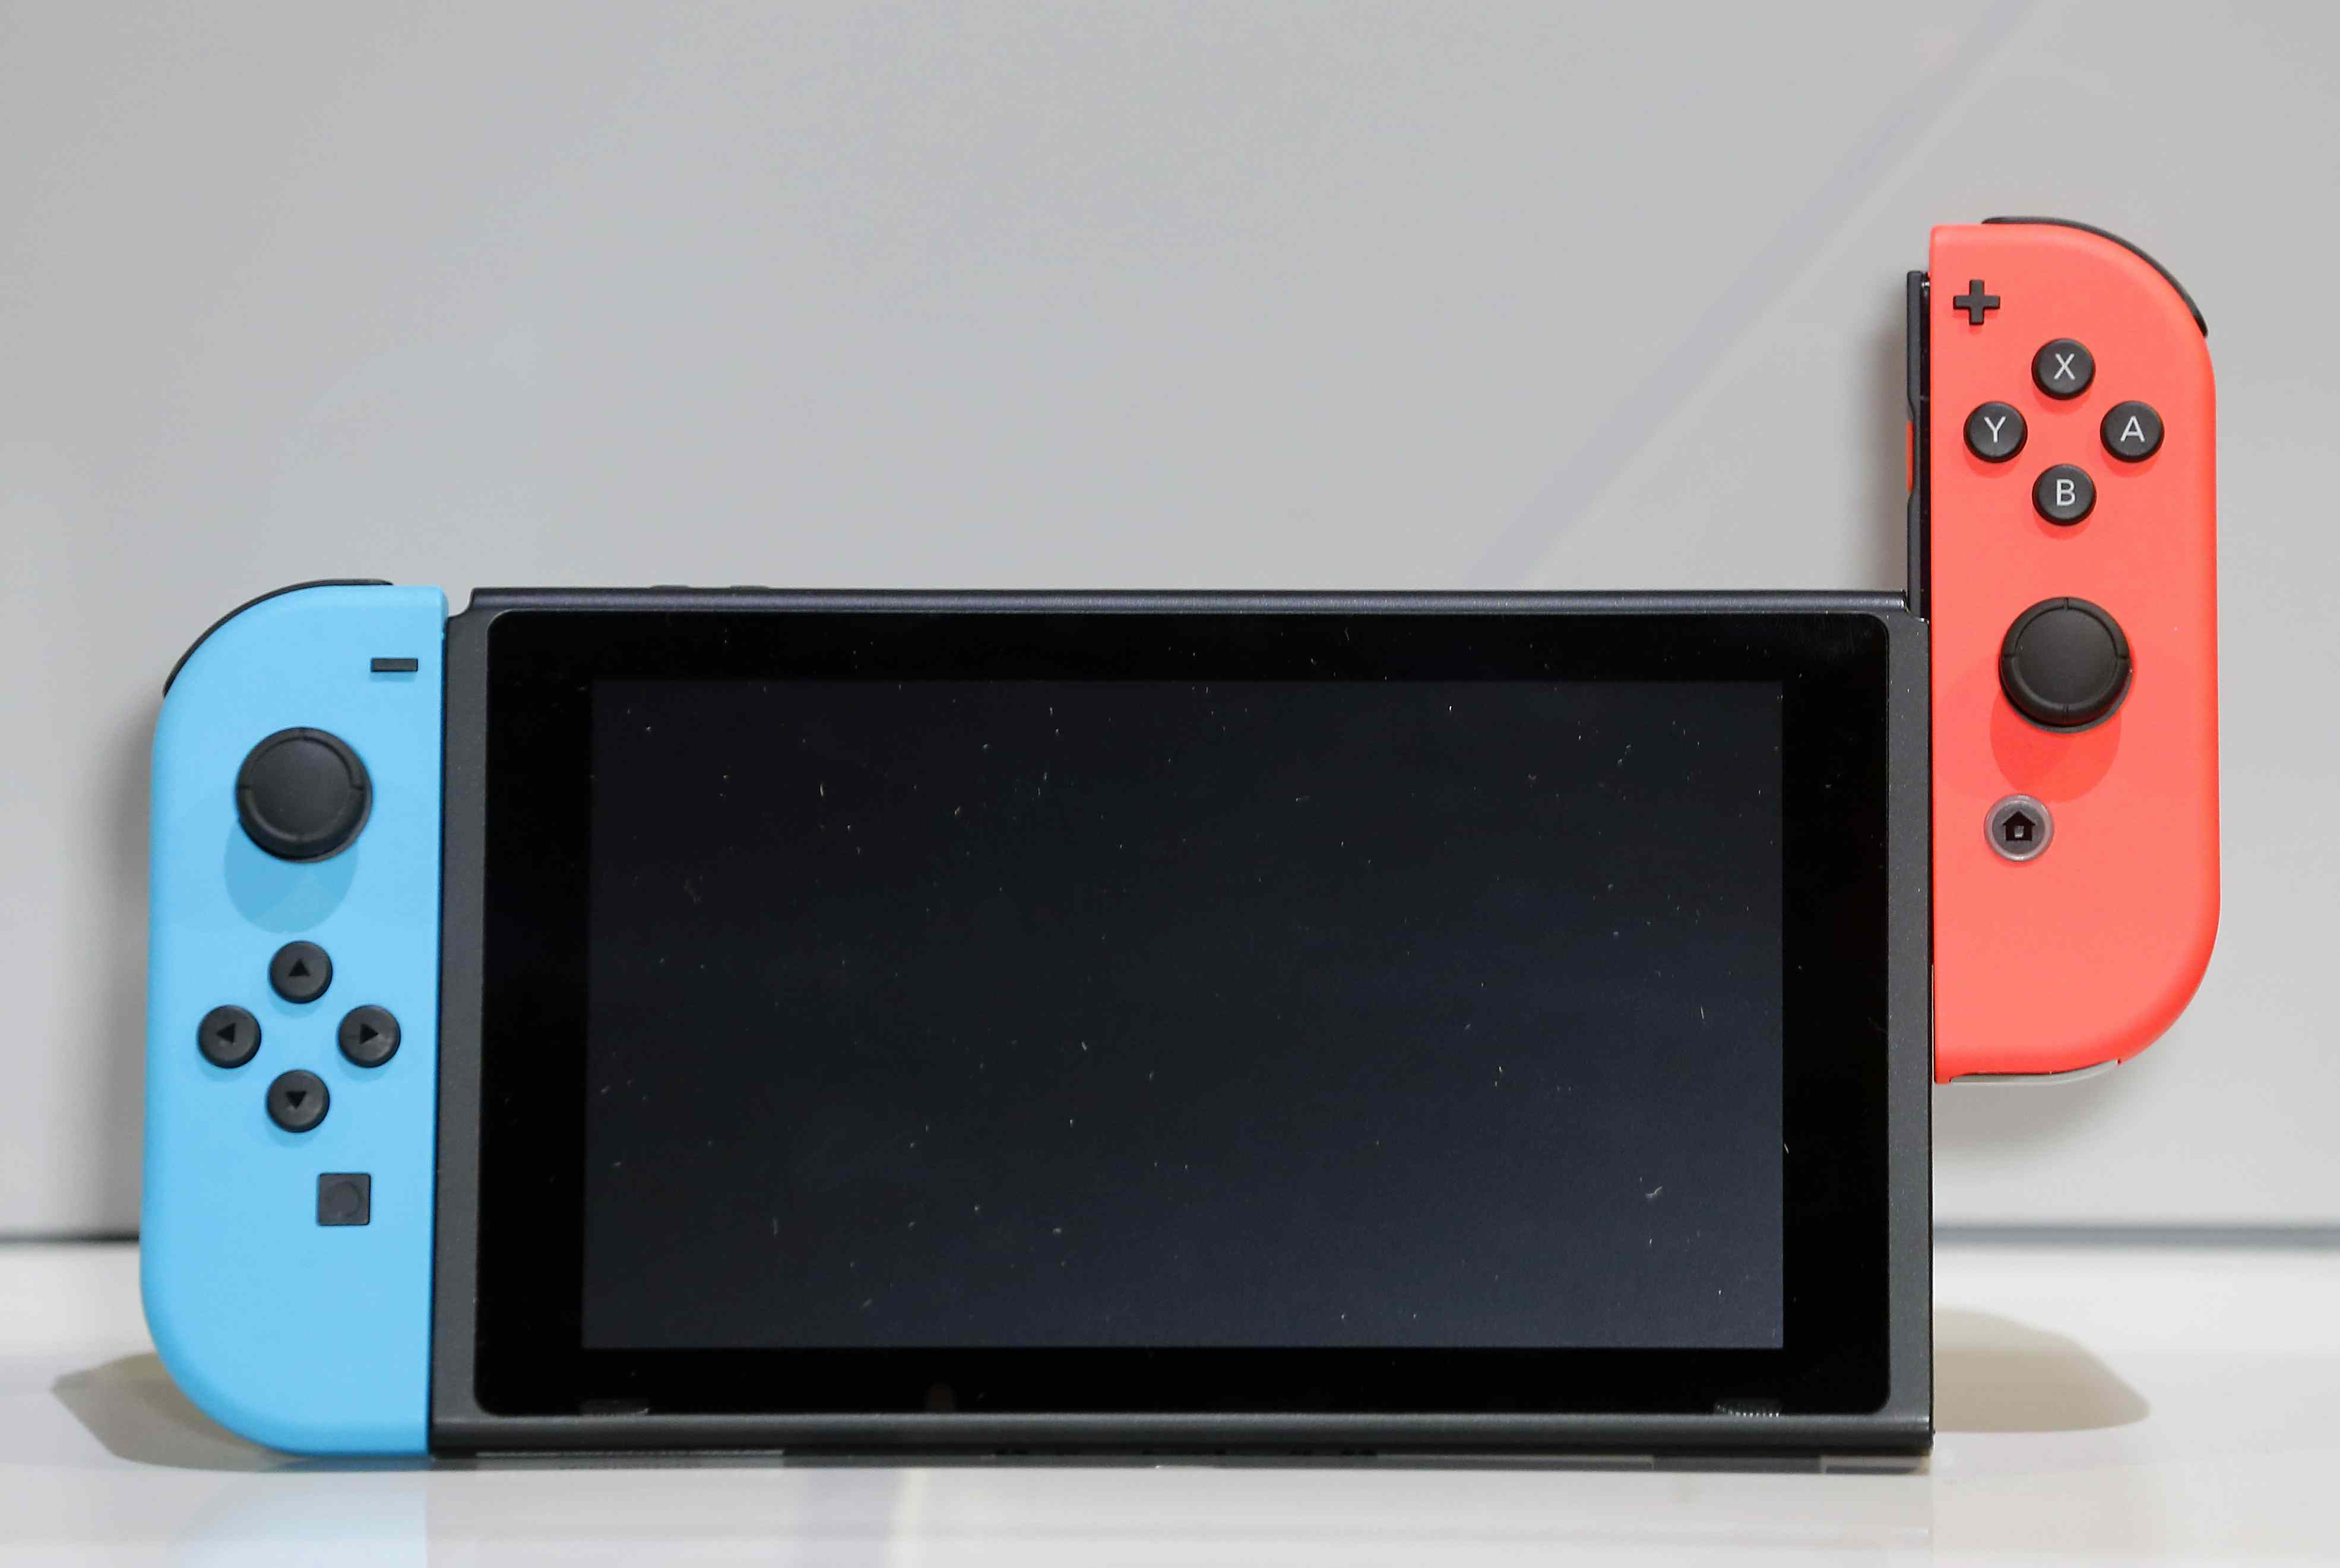 A Nintendo Switch controller is displayed with one side half attached to the screen.